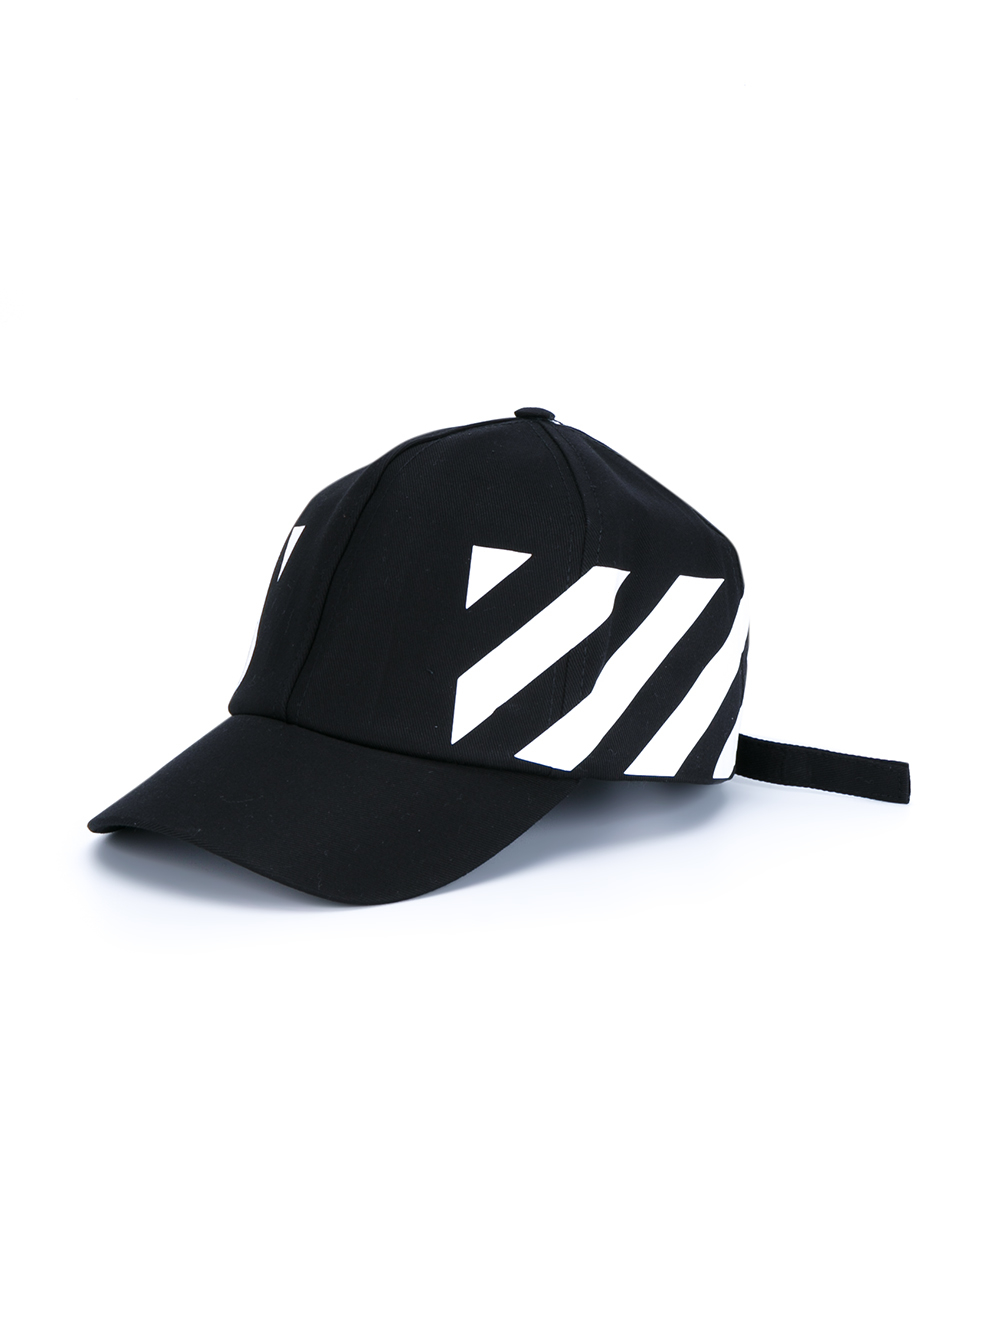 Off White Spring Summer 2017 Women S Collection: Off-White C/O Virgil Abloh Baseball Cap With Stripe